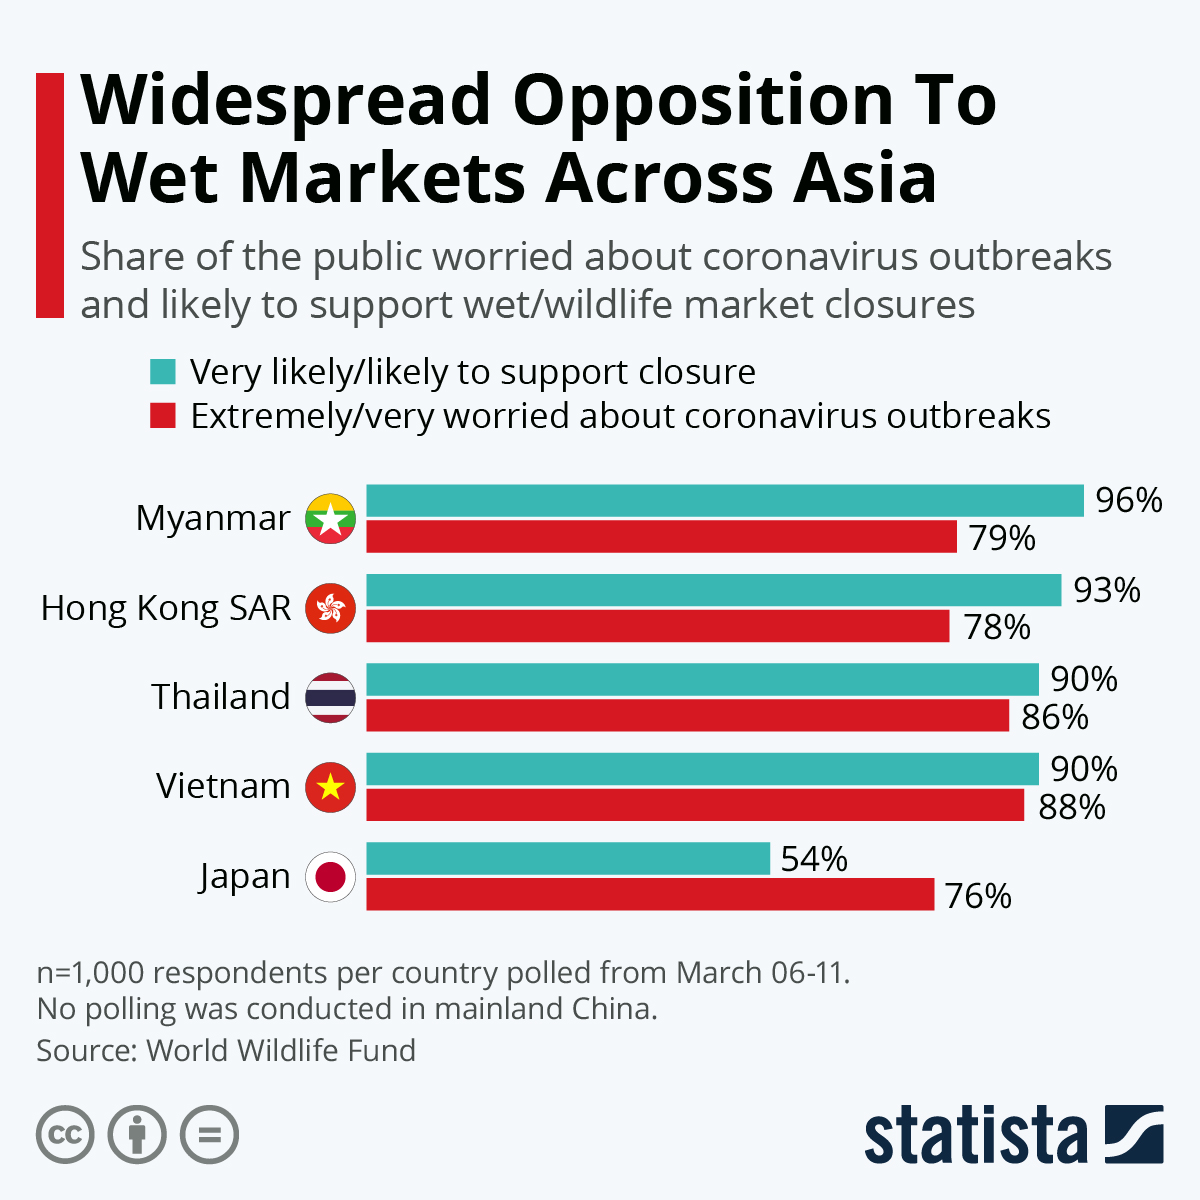 Widespread Opposition To Wet Markets Across Asia 3